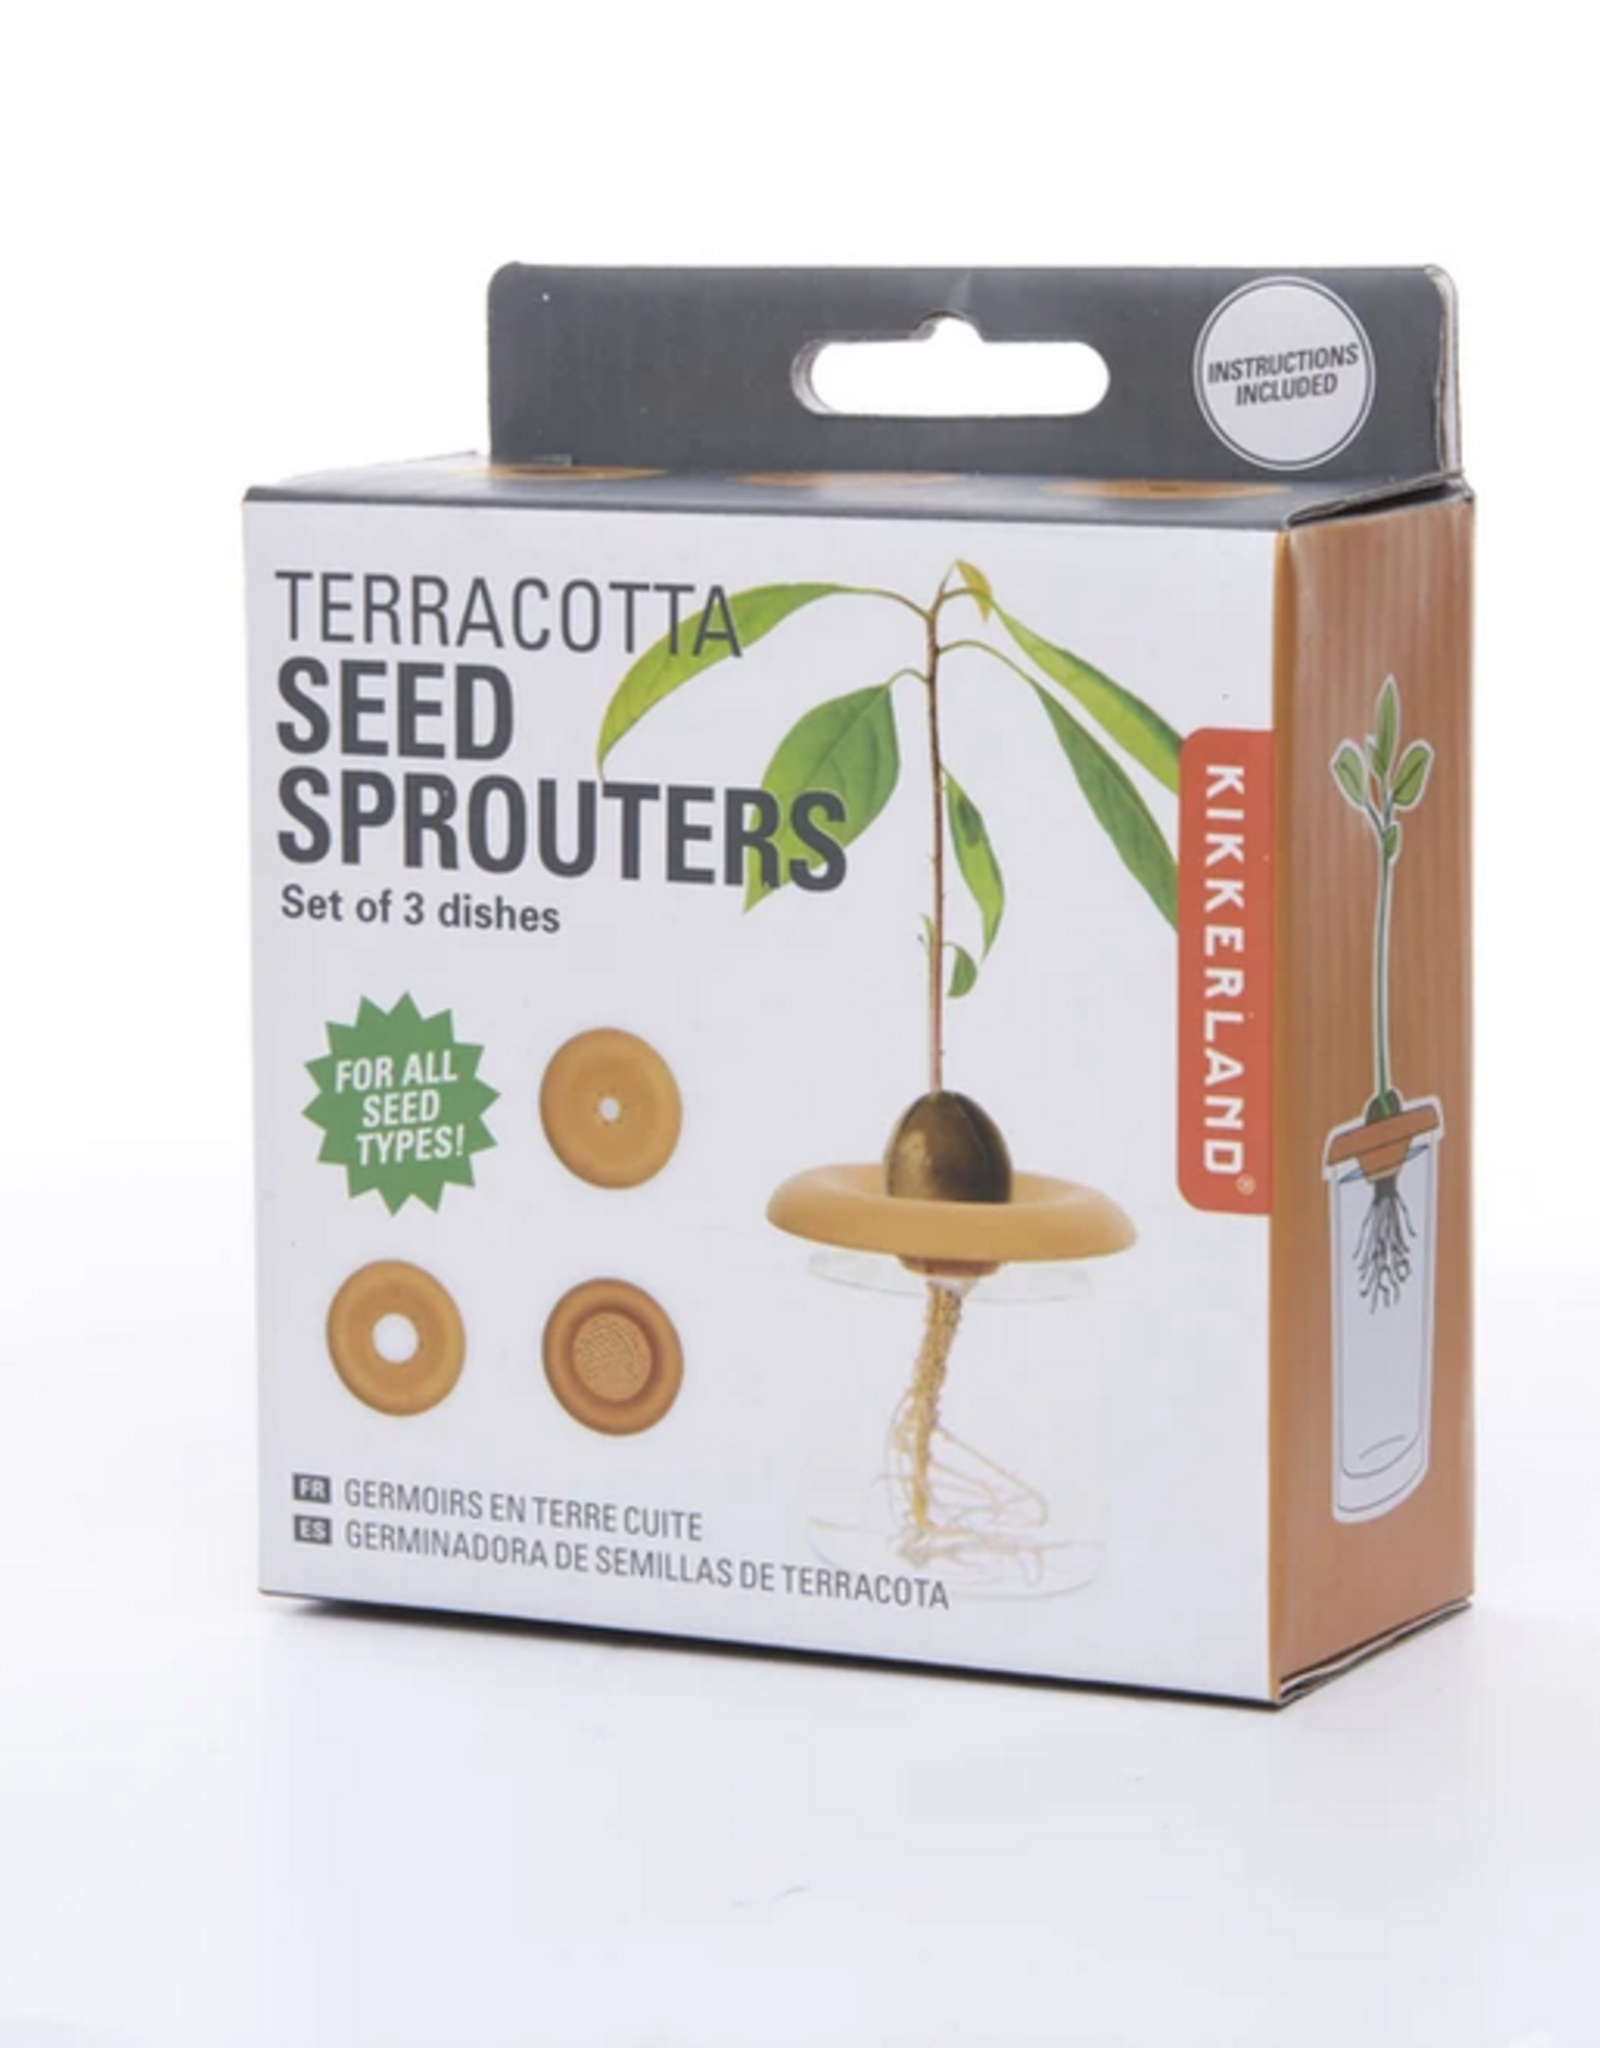 Terracotta Seed Sprouters